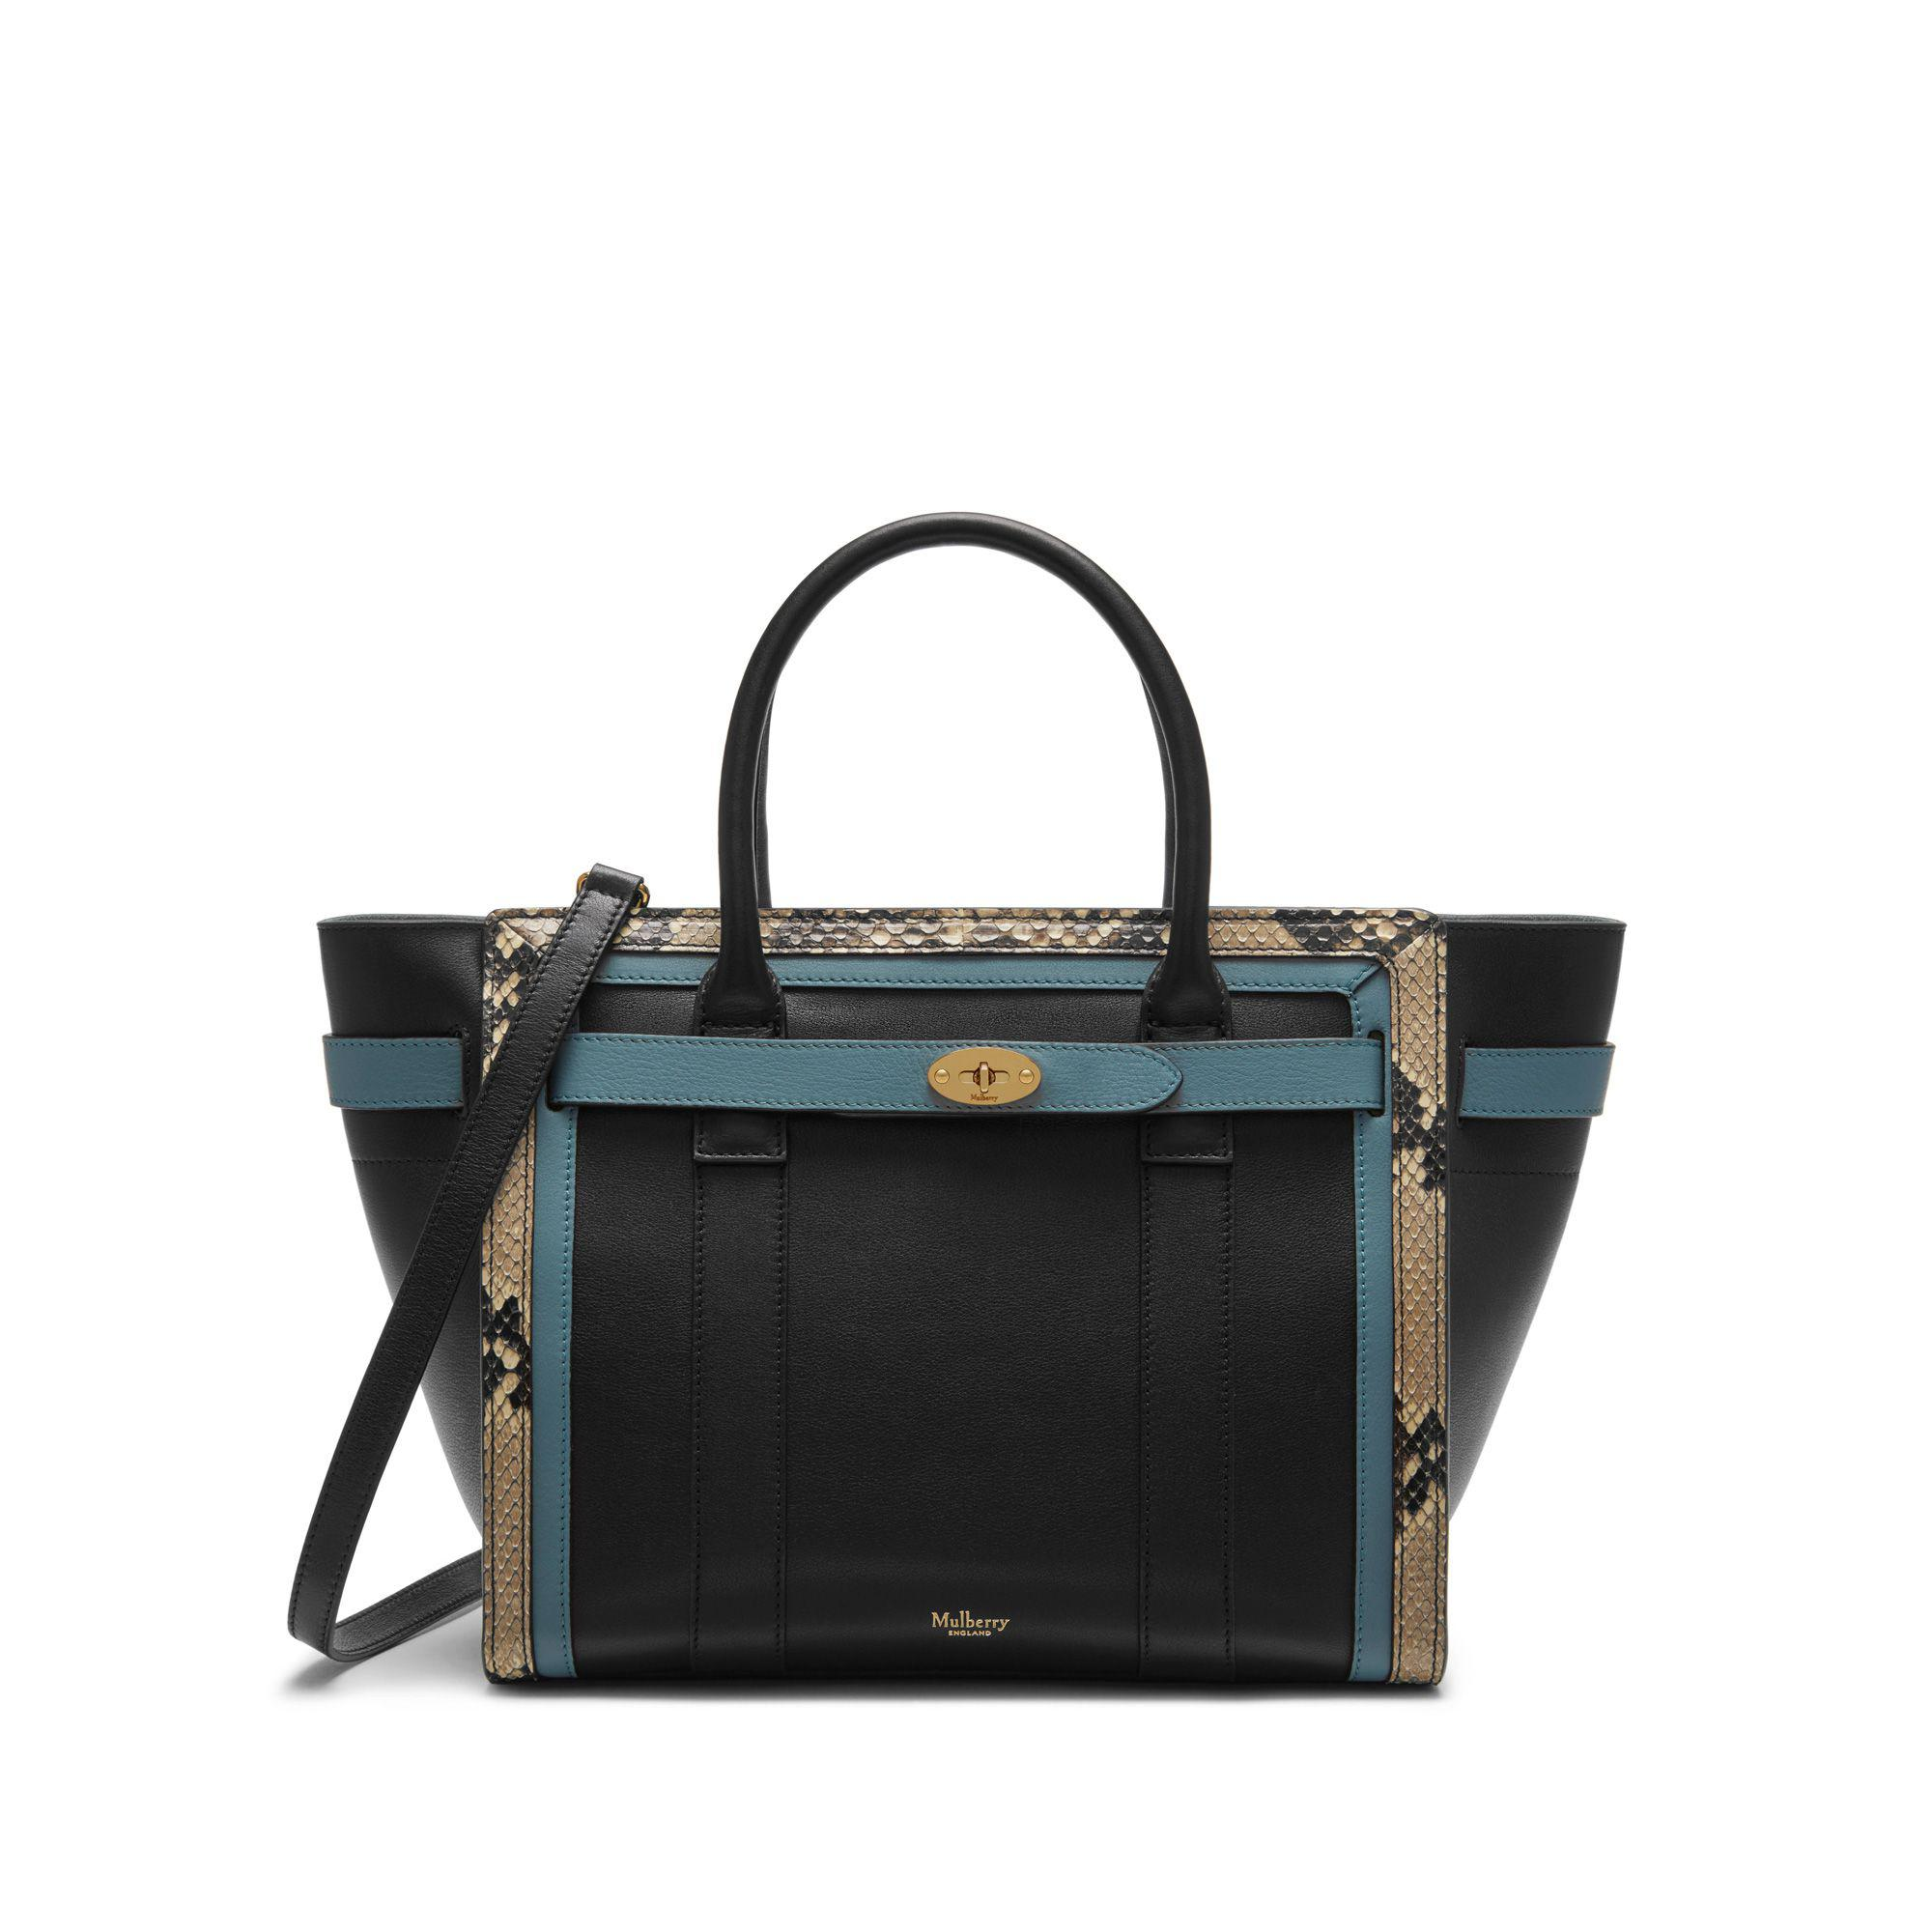 Mulberry Small Zipped Bayswater In Black e9df8ae726879